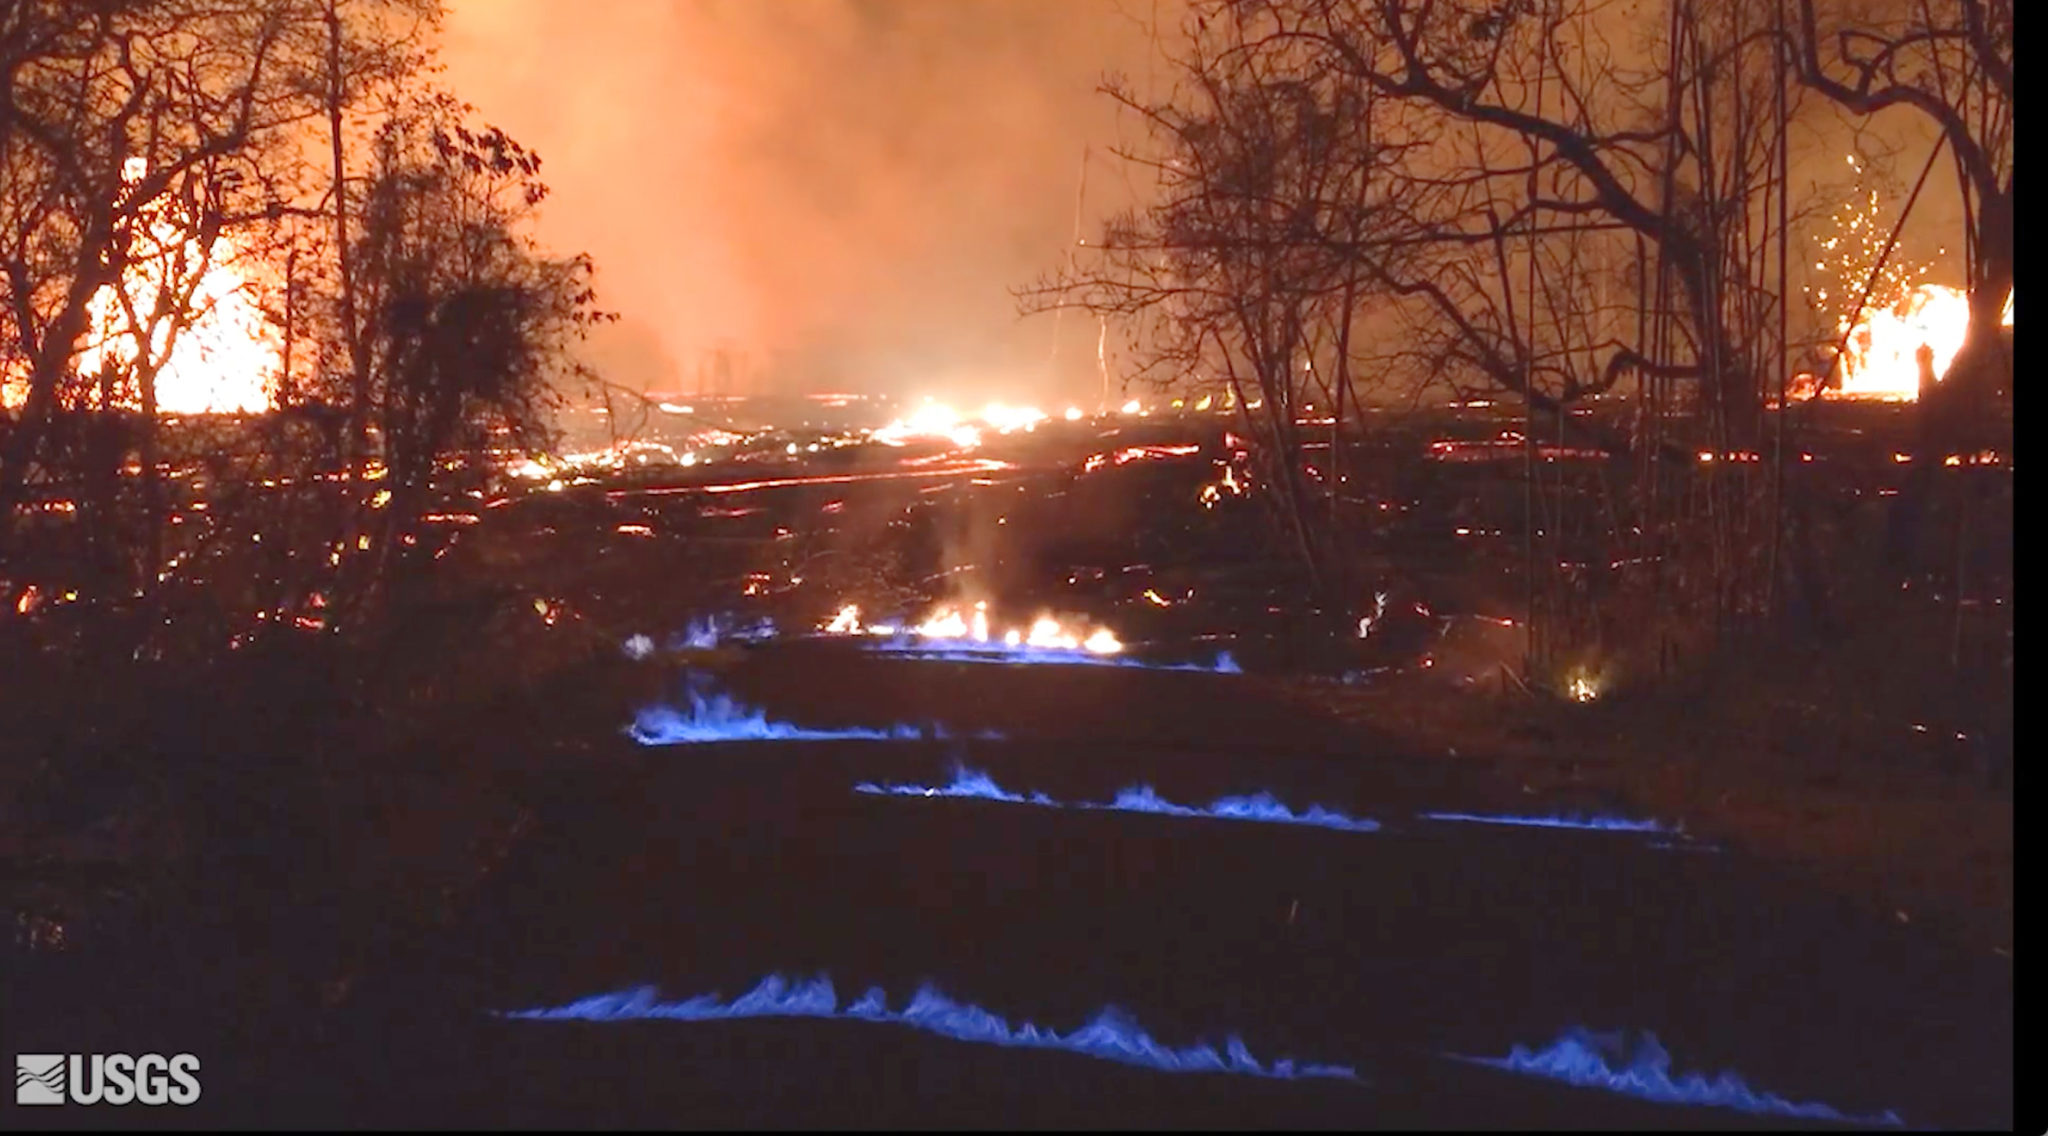 This photo from video from the U.S. Geological Survey shows blue burning flames of methane gas erupting through cracks on Kahukai Street in the Leilani Estates neighborhood of Pahoa on the island of Hawaii during the overnight hours of Wednesday, May 23, 2018. When lava buries plants and shrubs, methane gas is produced as a byproduct of burning vegetation. Methane gas can seep into subsurface voids and explode when heated, emerging from cracks in the ground several feet away from the lava. (U.S. Geological Survey via AP)